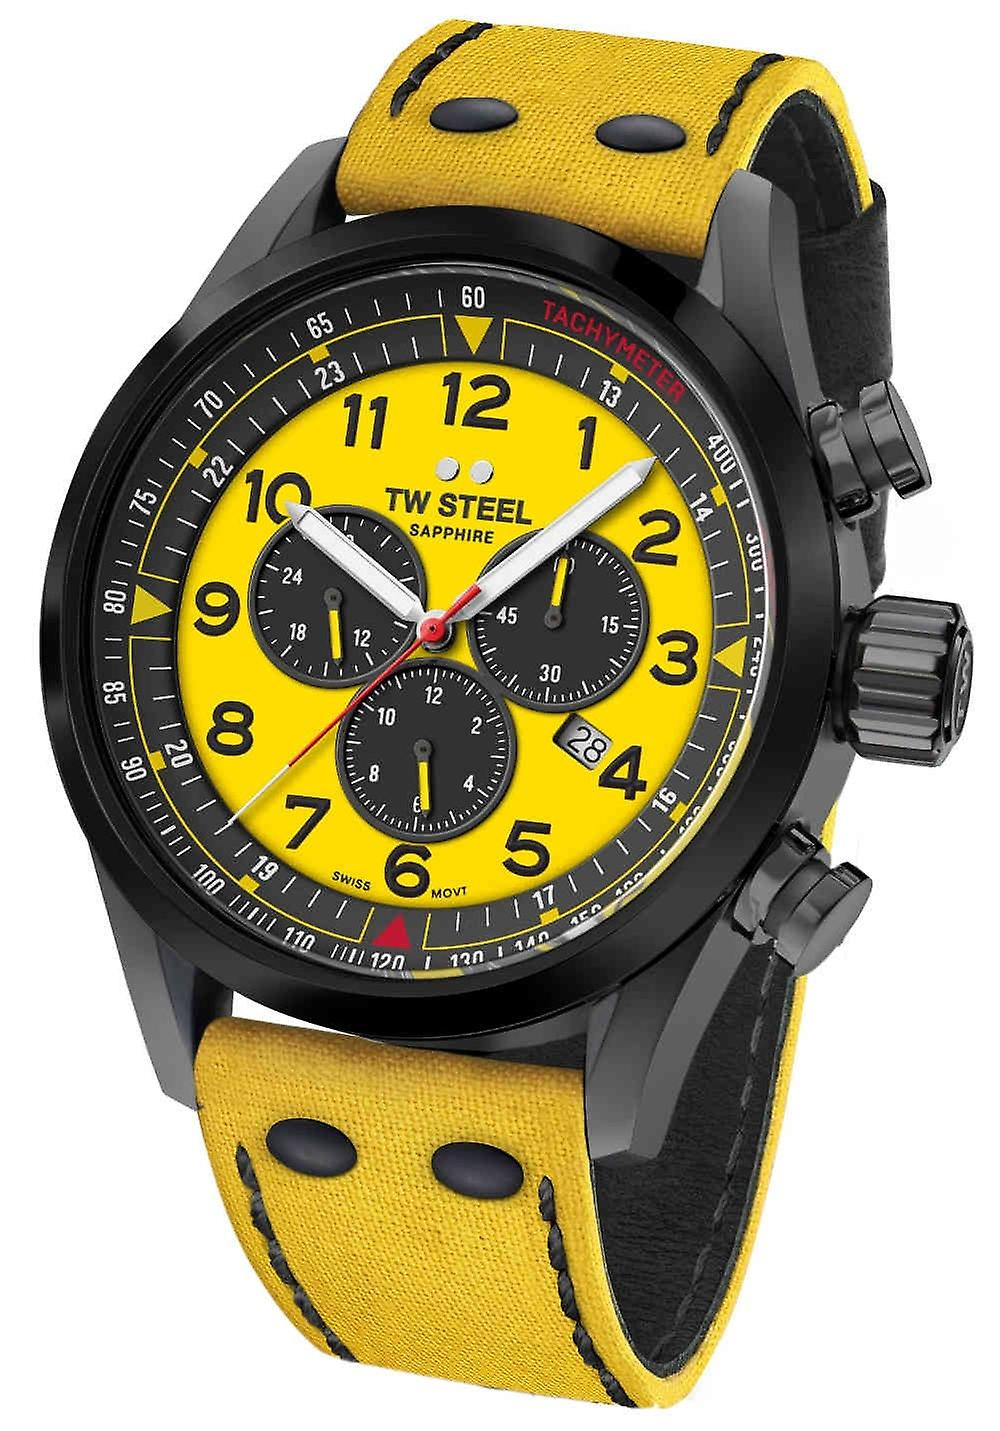 Tw Steel Swiss Volante Svs302y Wtcr Limited Edition Chronograph Watch 48mm